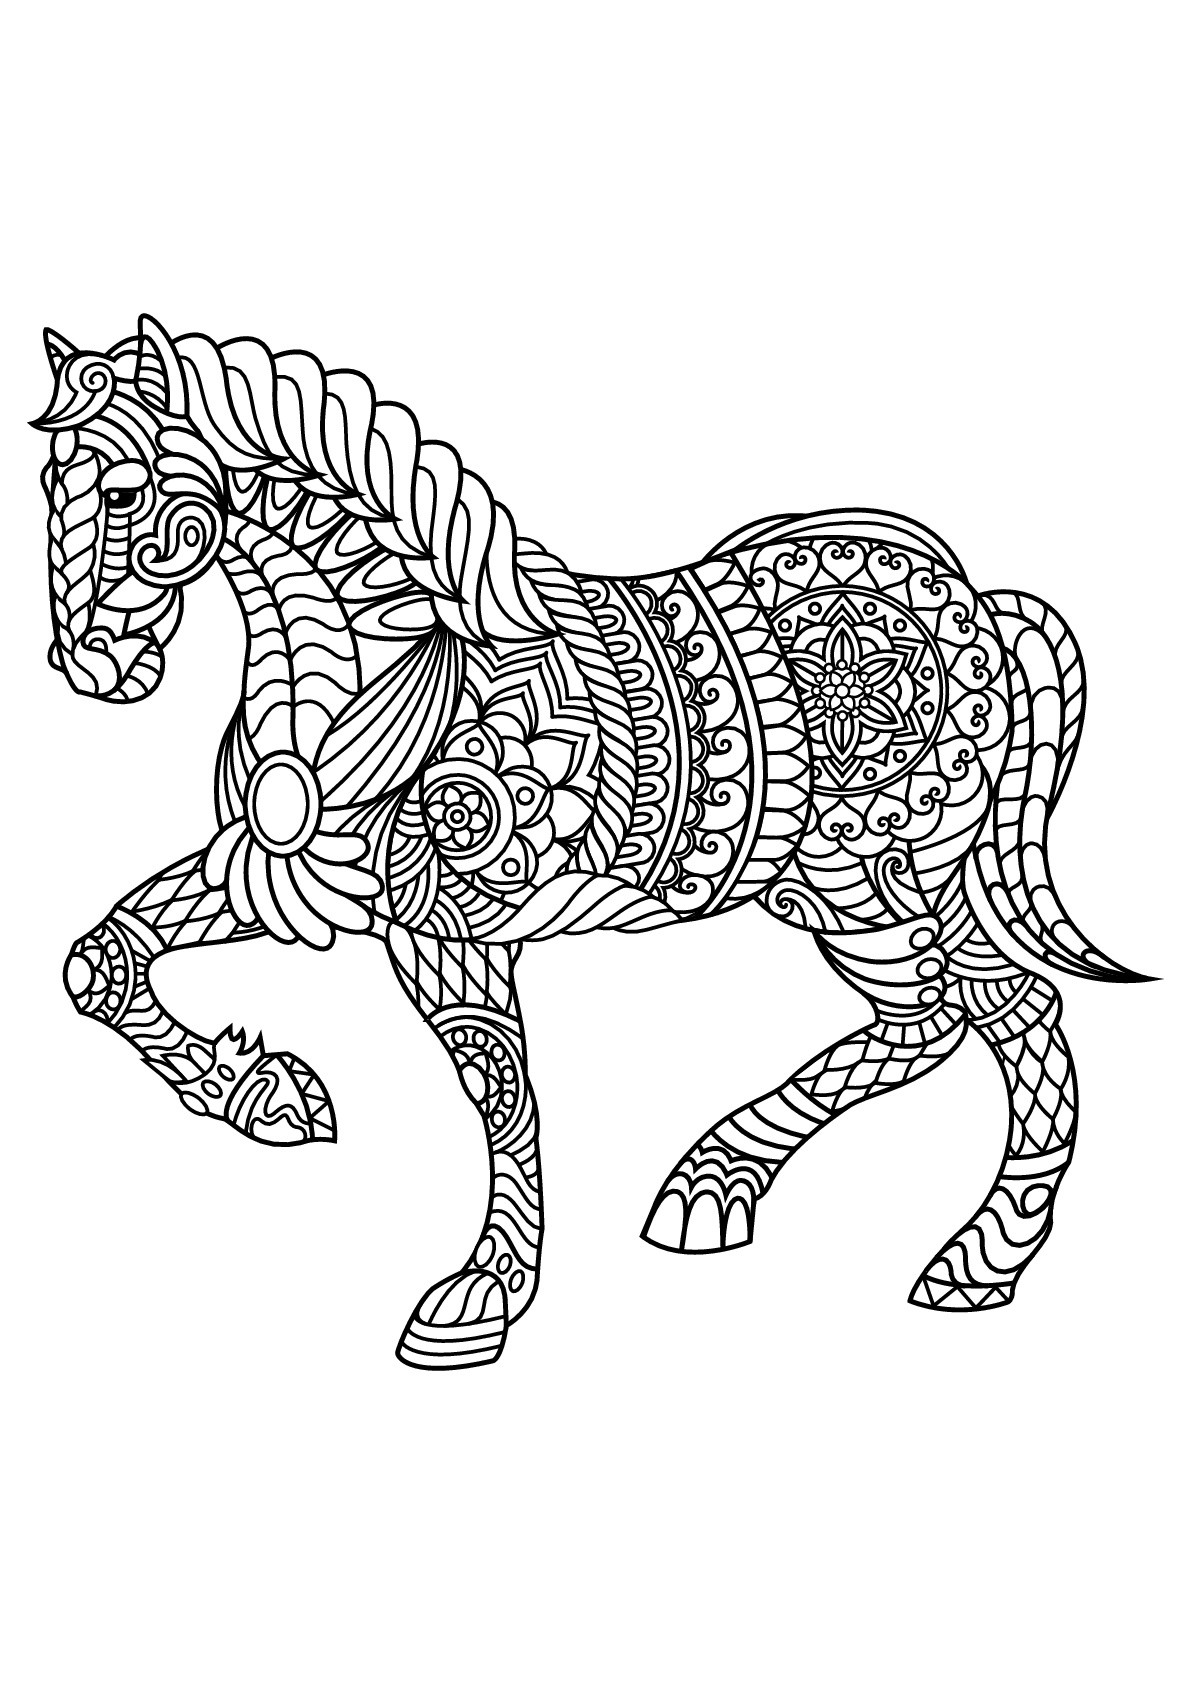 Best ideas about Horses Coloring Pages For Adults . Save or Pin Free book horse Horses Adult Coloring Pages Now.